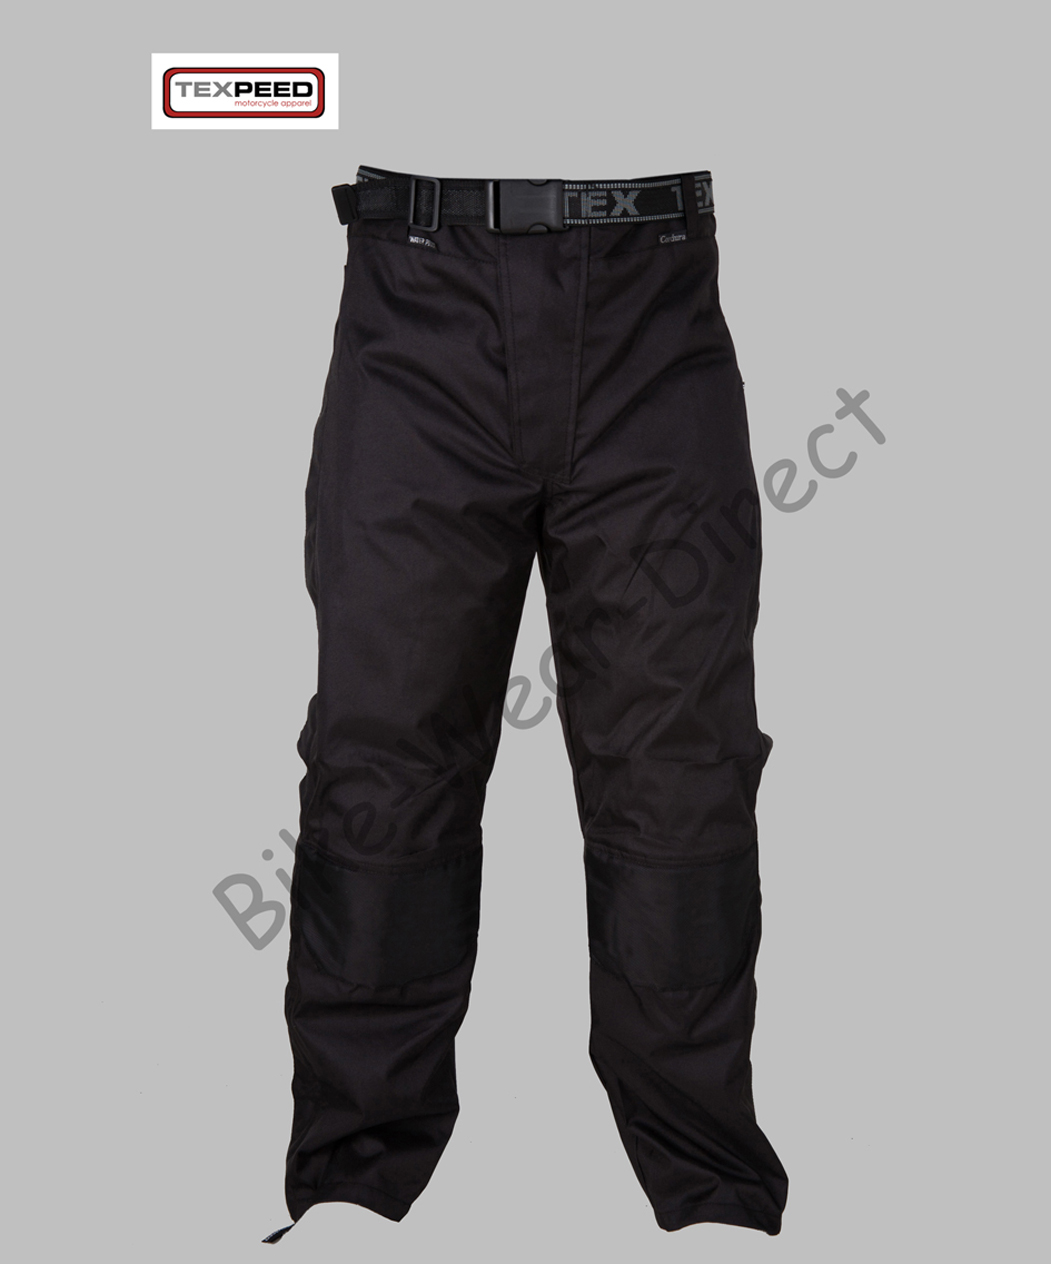 Mens Black Armoured Waterproof Motorcycle Motorbike Over Trousers Full Zip